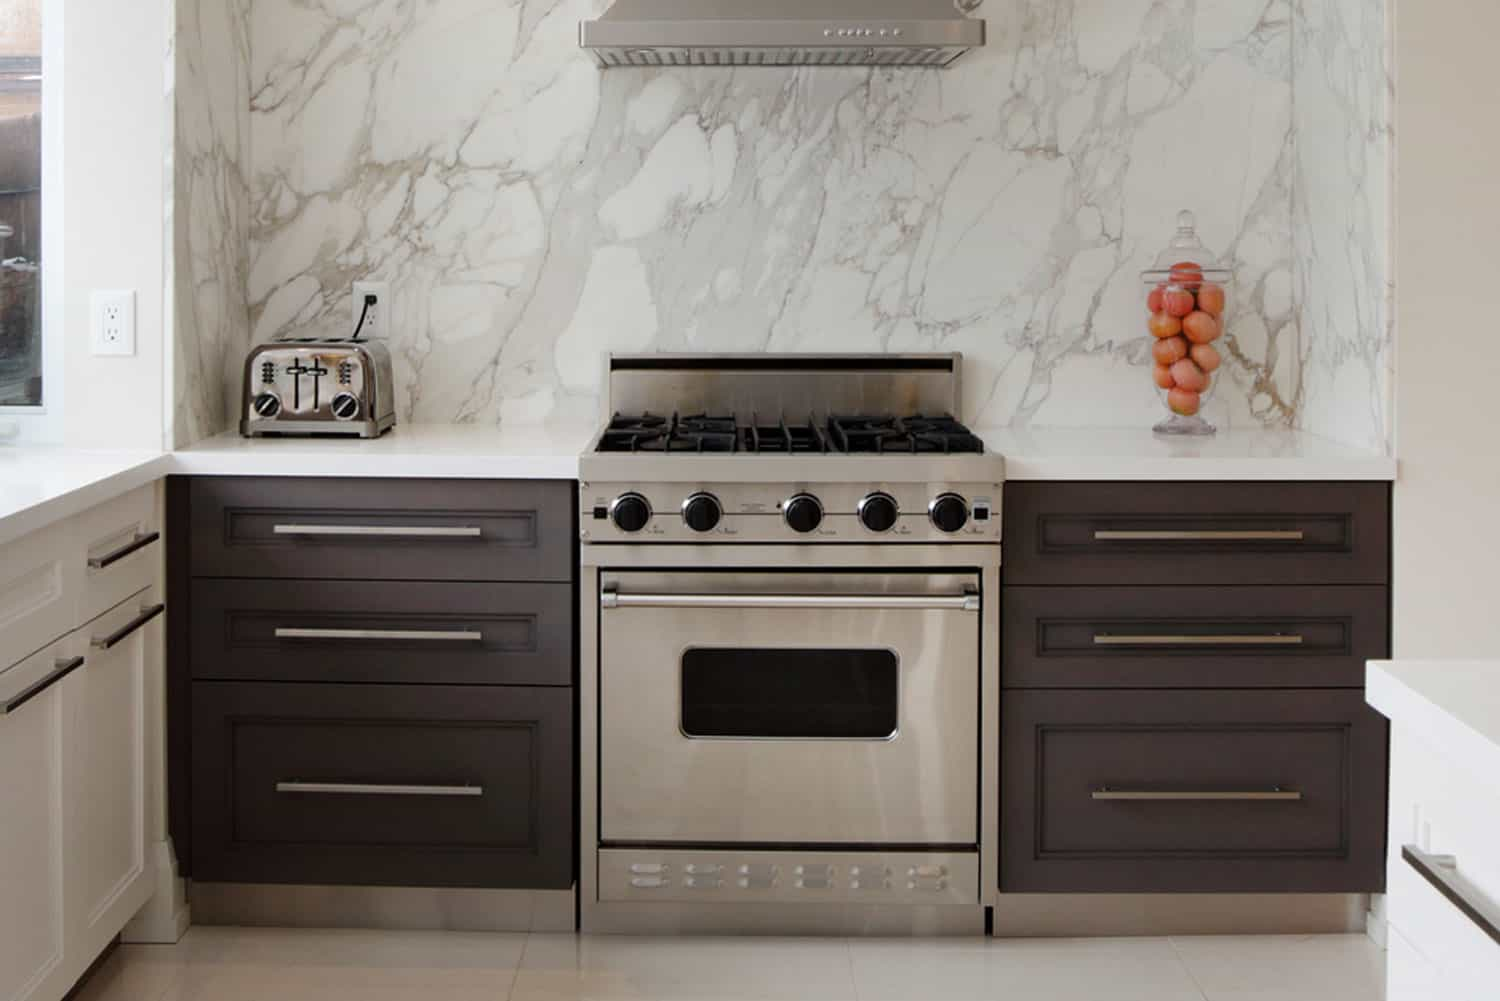 Interior of modern luxury kitchen in North American private residence, What Is The Standard Depth Of A Range?